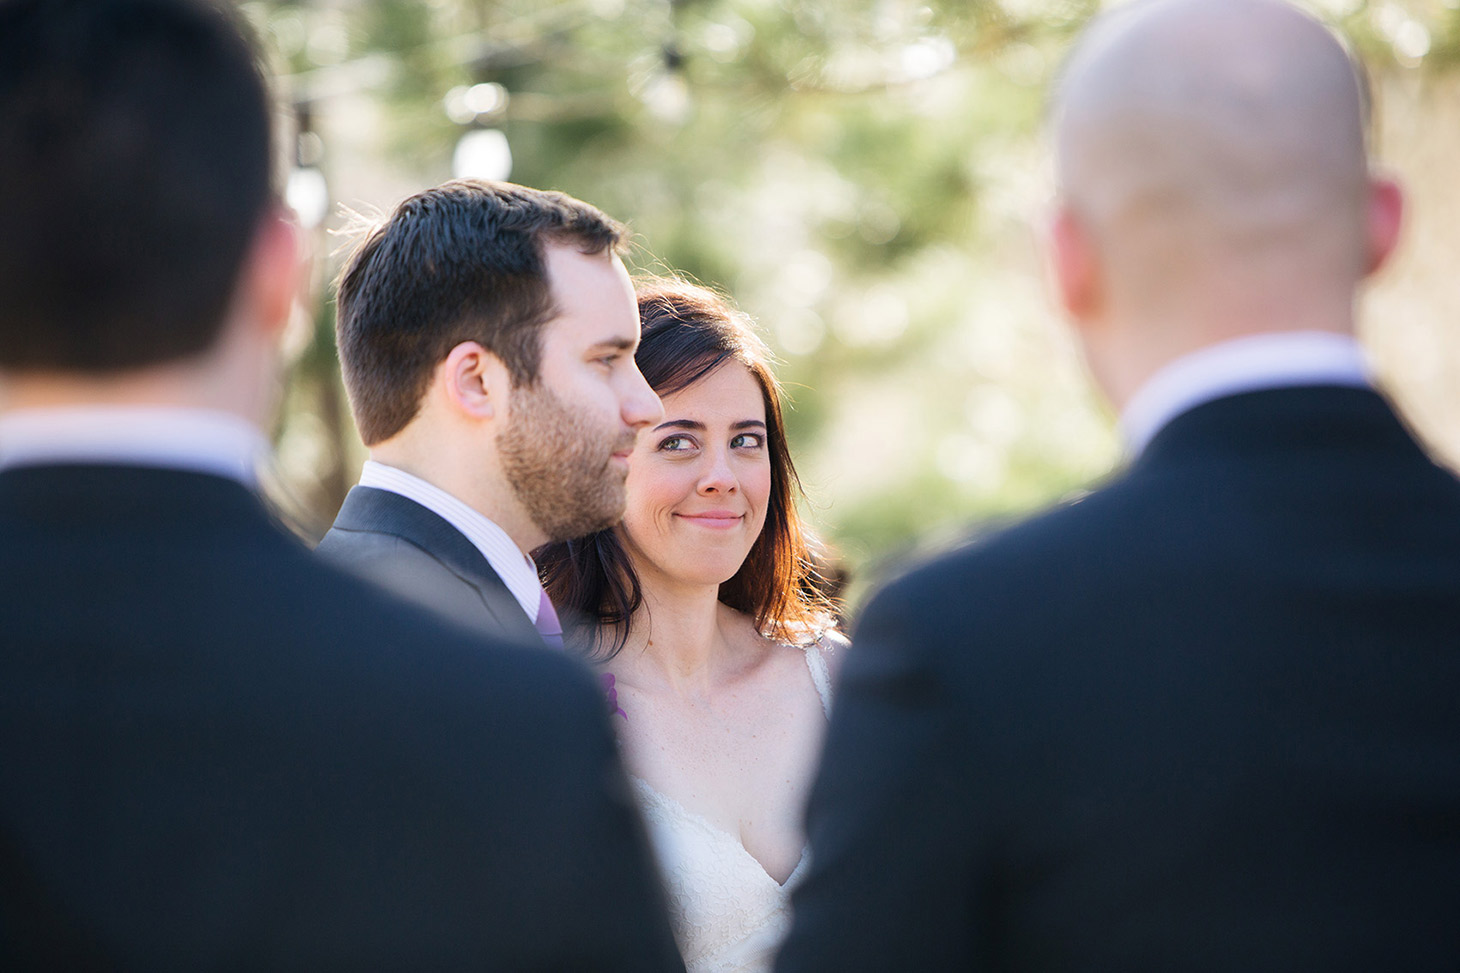 Megan-Newton-Photography-Best-Wedding-Photos-2015-007